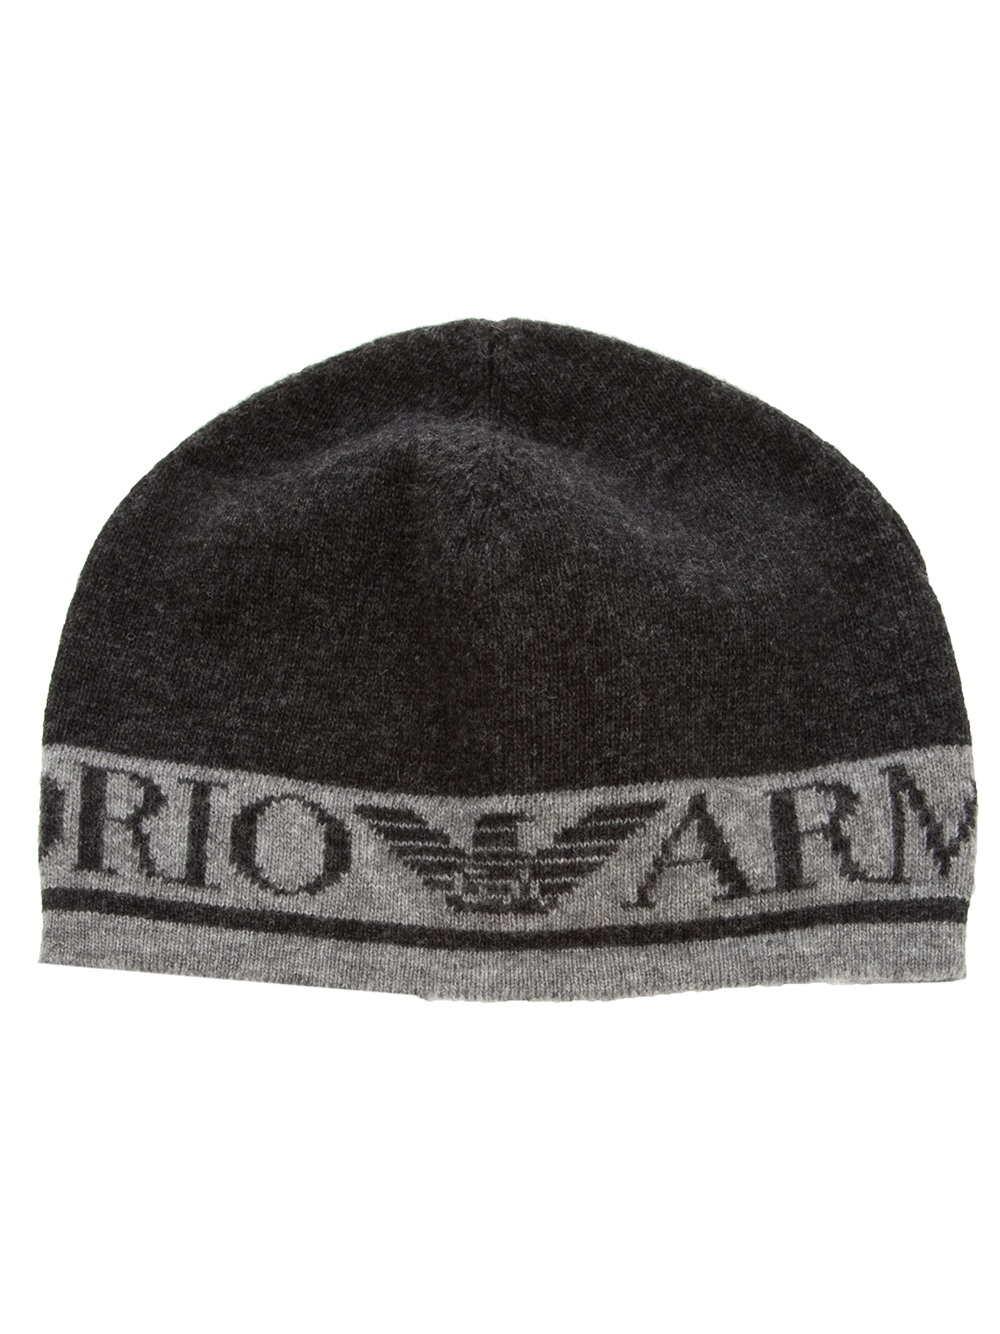 Emporio Armani Beanie Hat in Gray for Men - Lyst d5153ab5e5a